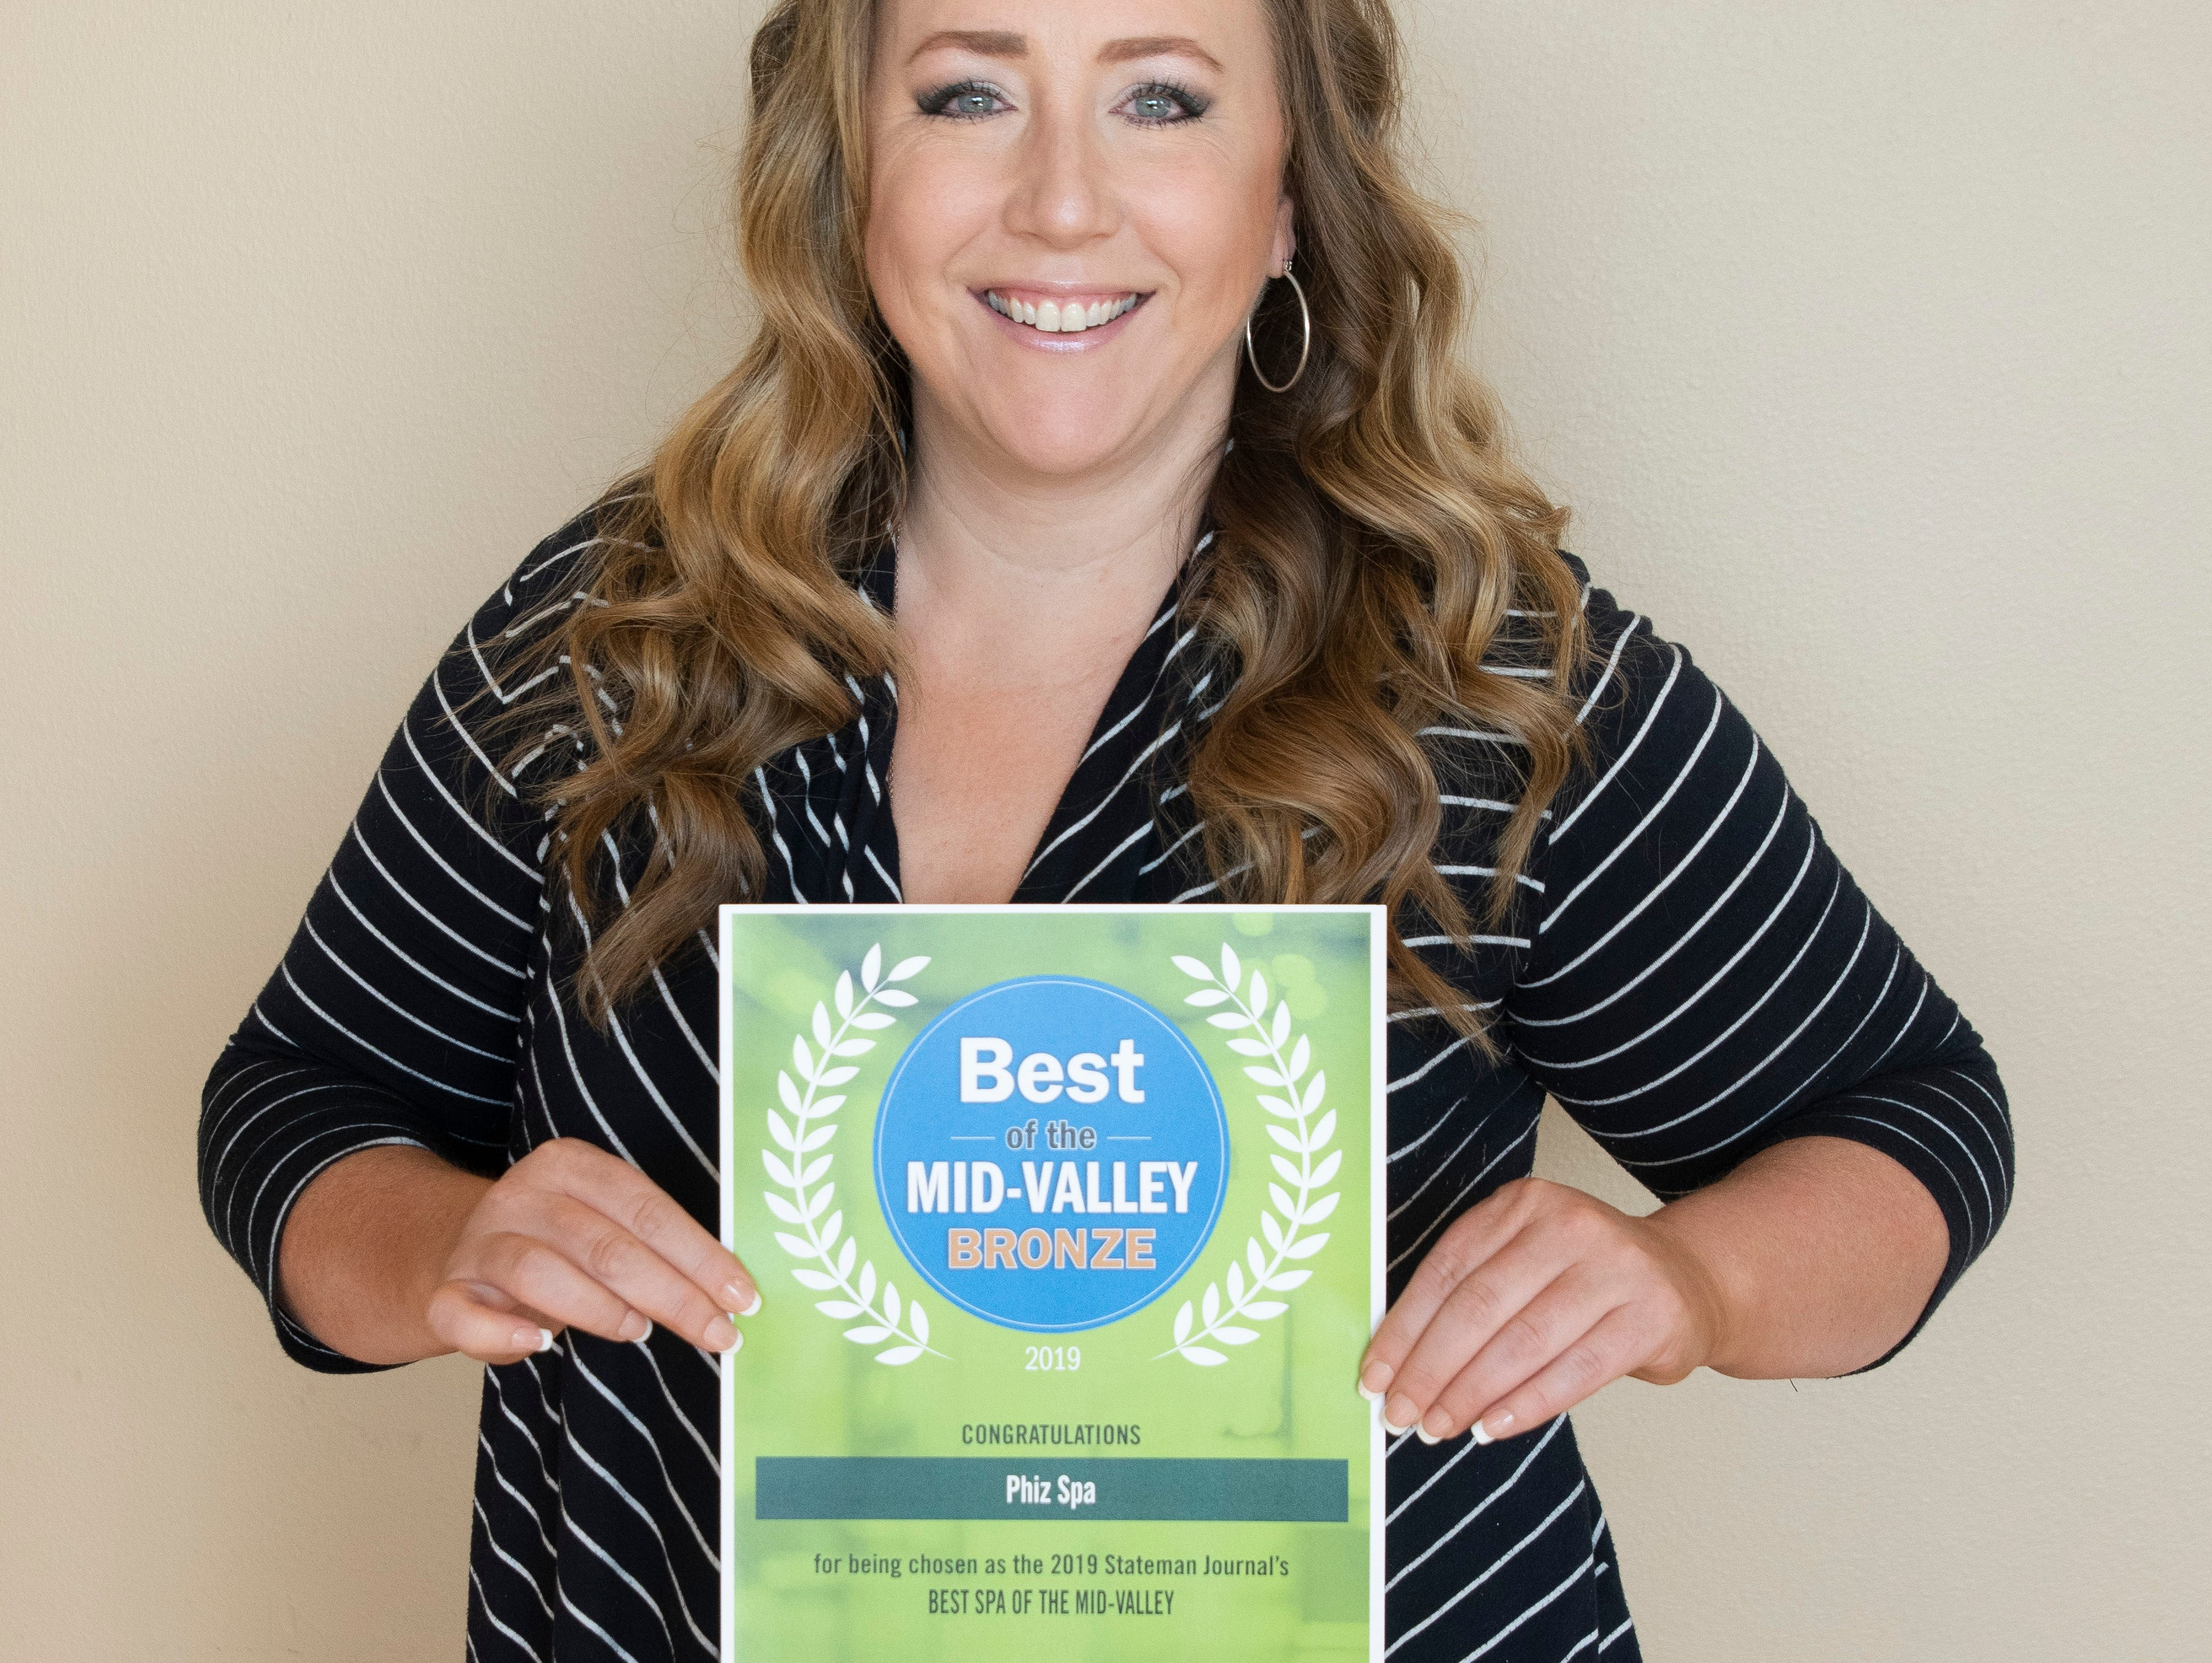 Phiz Spa won bronze for Best Spa in the 2019 Best of the Mid-Valley.